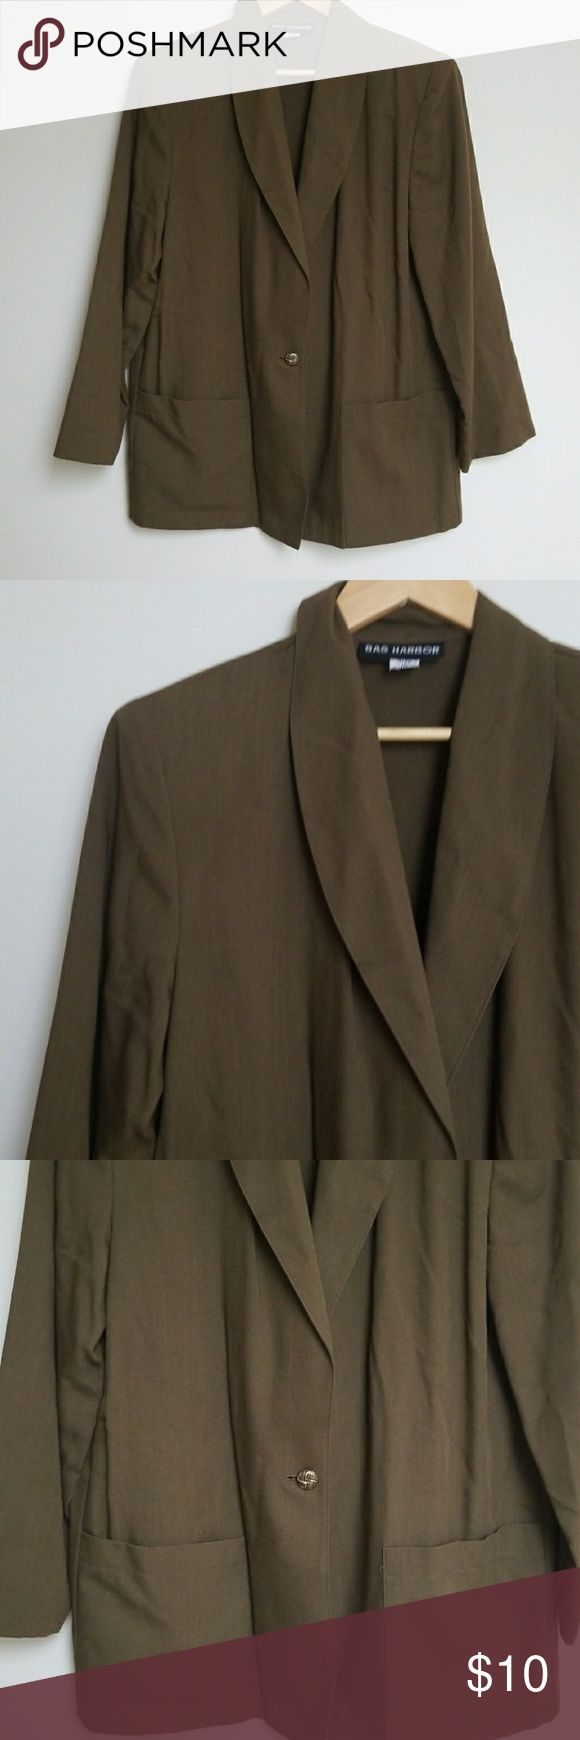 Retro Olive Green Blazer Retro Olive Green Blazer Light Weight Size 12 | Removable Shoulder Pads Like New Condition Pair with somw skinny jeans and pumps Sag Harbor Jackets & Coats Blazers